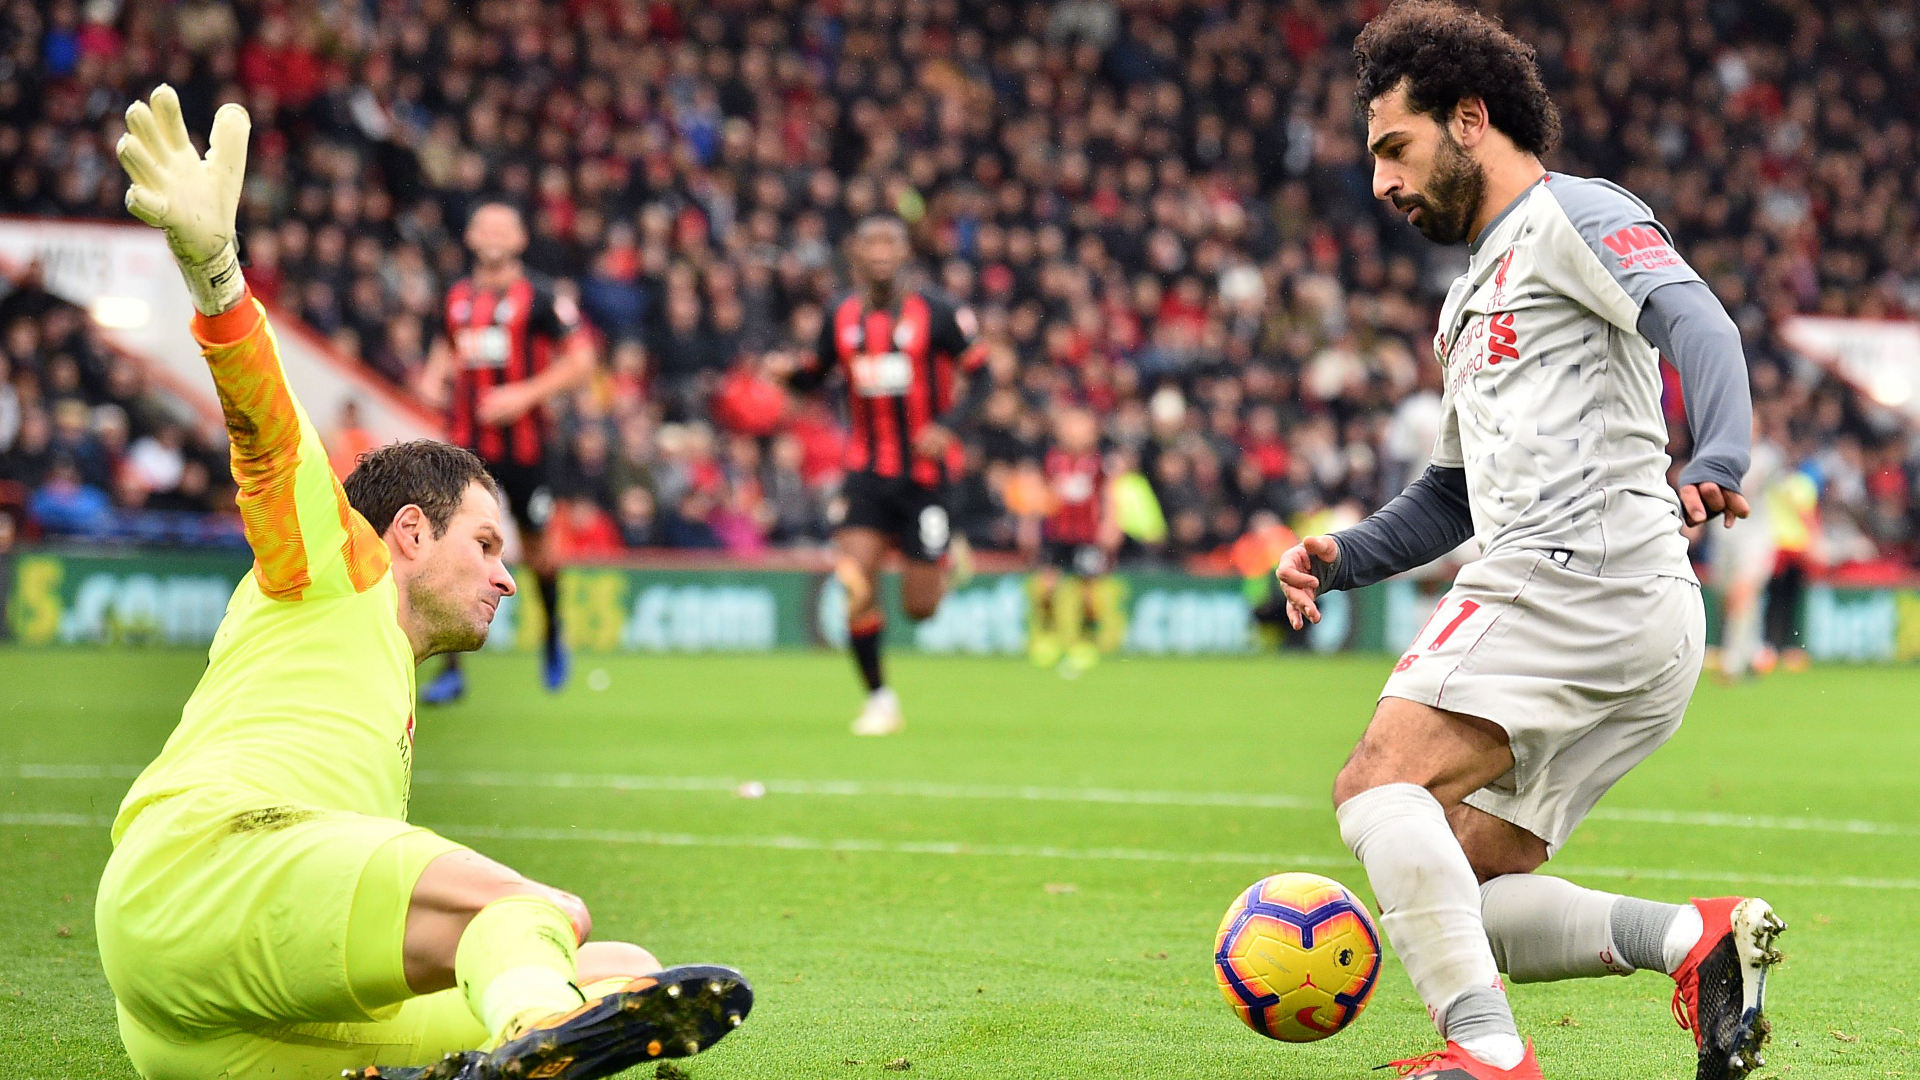 Mohamed Salah Gives Man of the Match To James Milner